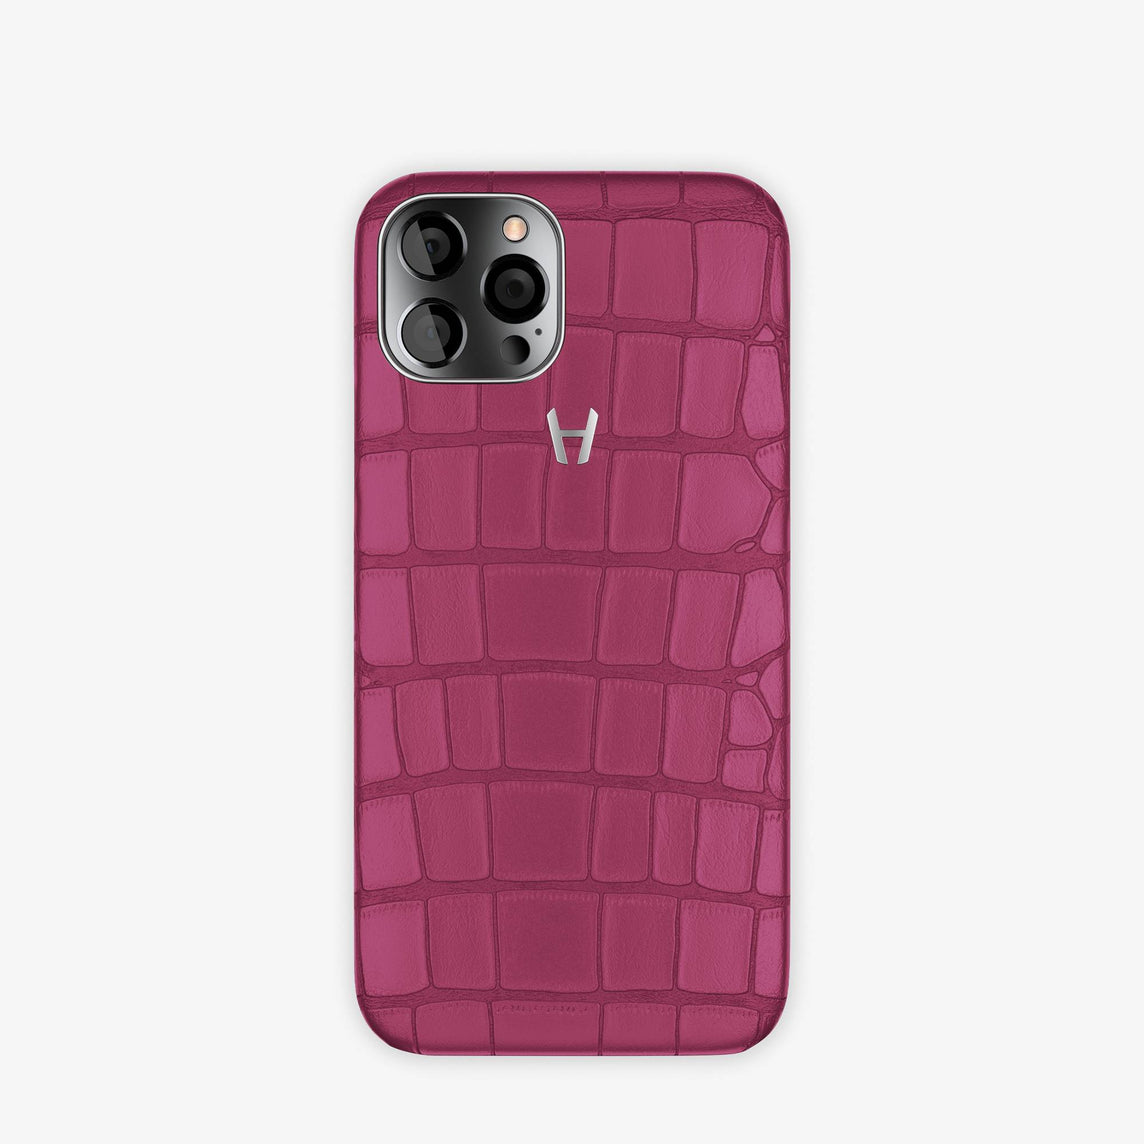 Alligator Case Apple iPhone 12 & iPhone 12 Pro | Pink Fuchsia - Stainless Steel